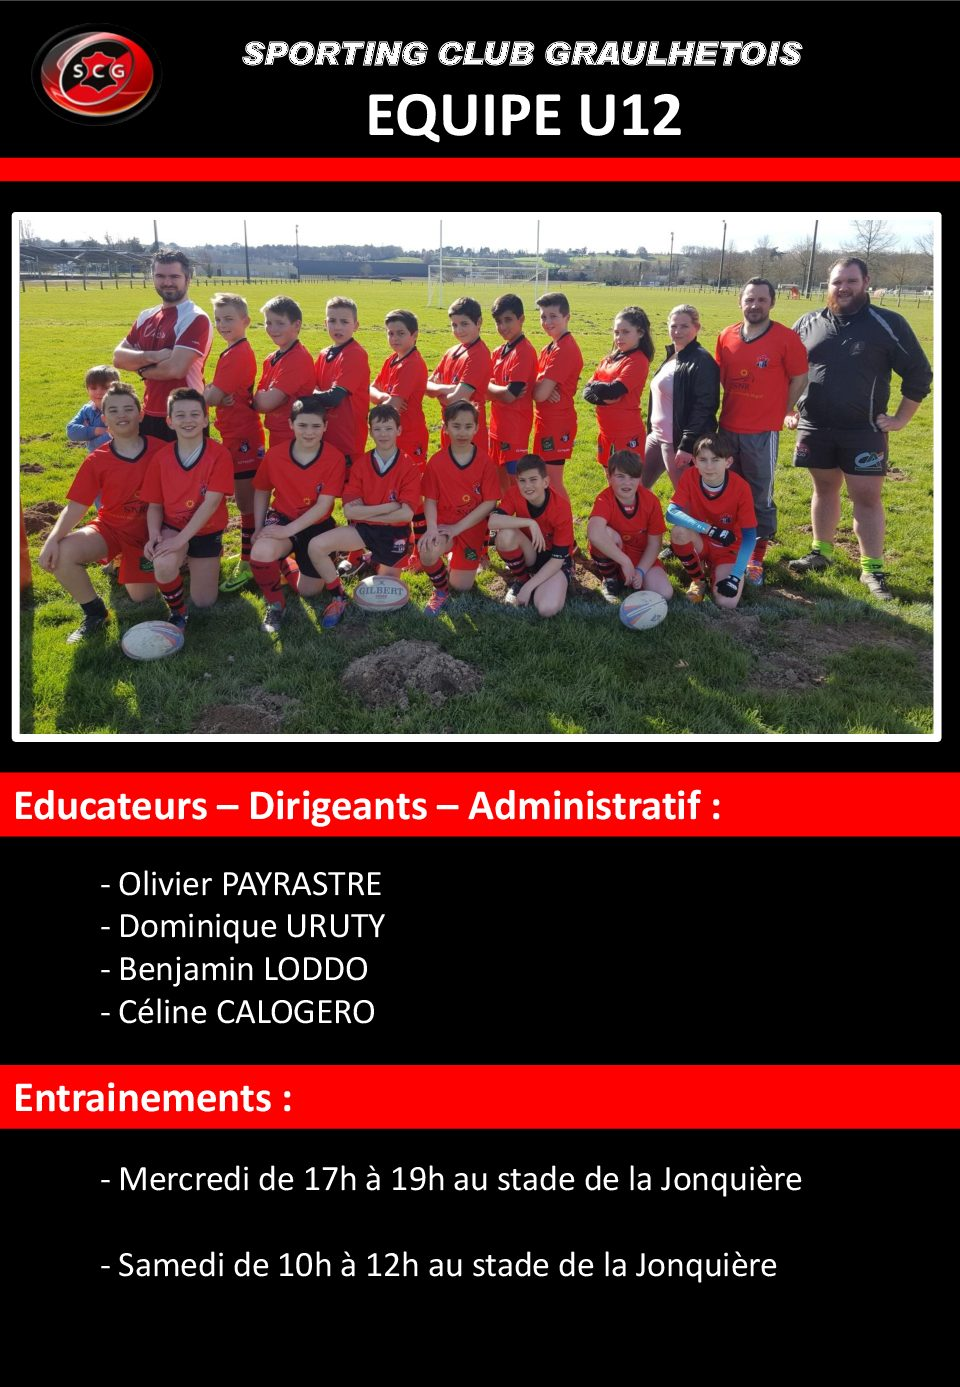 http://scg-rugby.com/wp-content/uploads/2018/04/U12-GROUPE-pdf-2.jpg